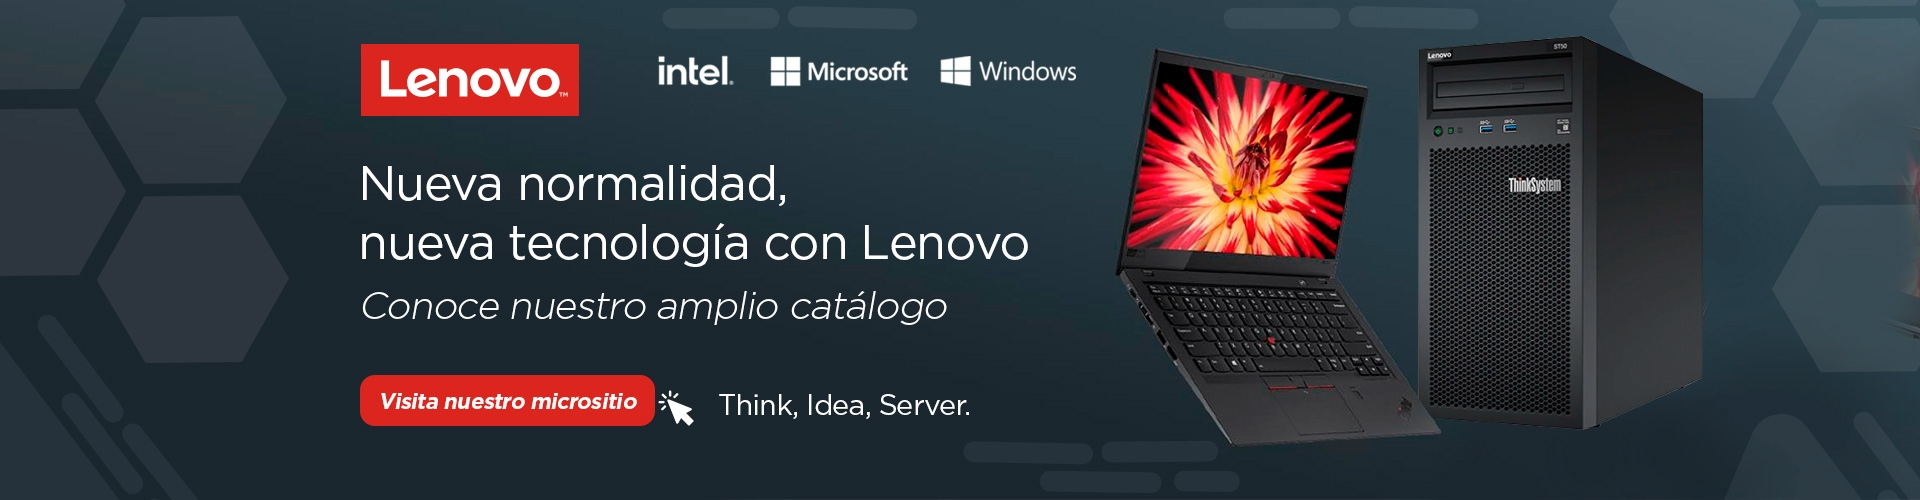 micrositio lenovo catalogo productos servidores think idea